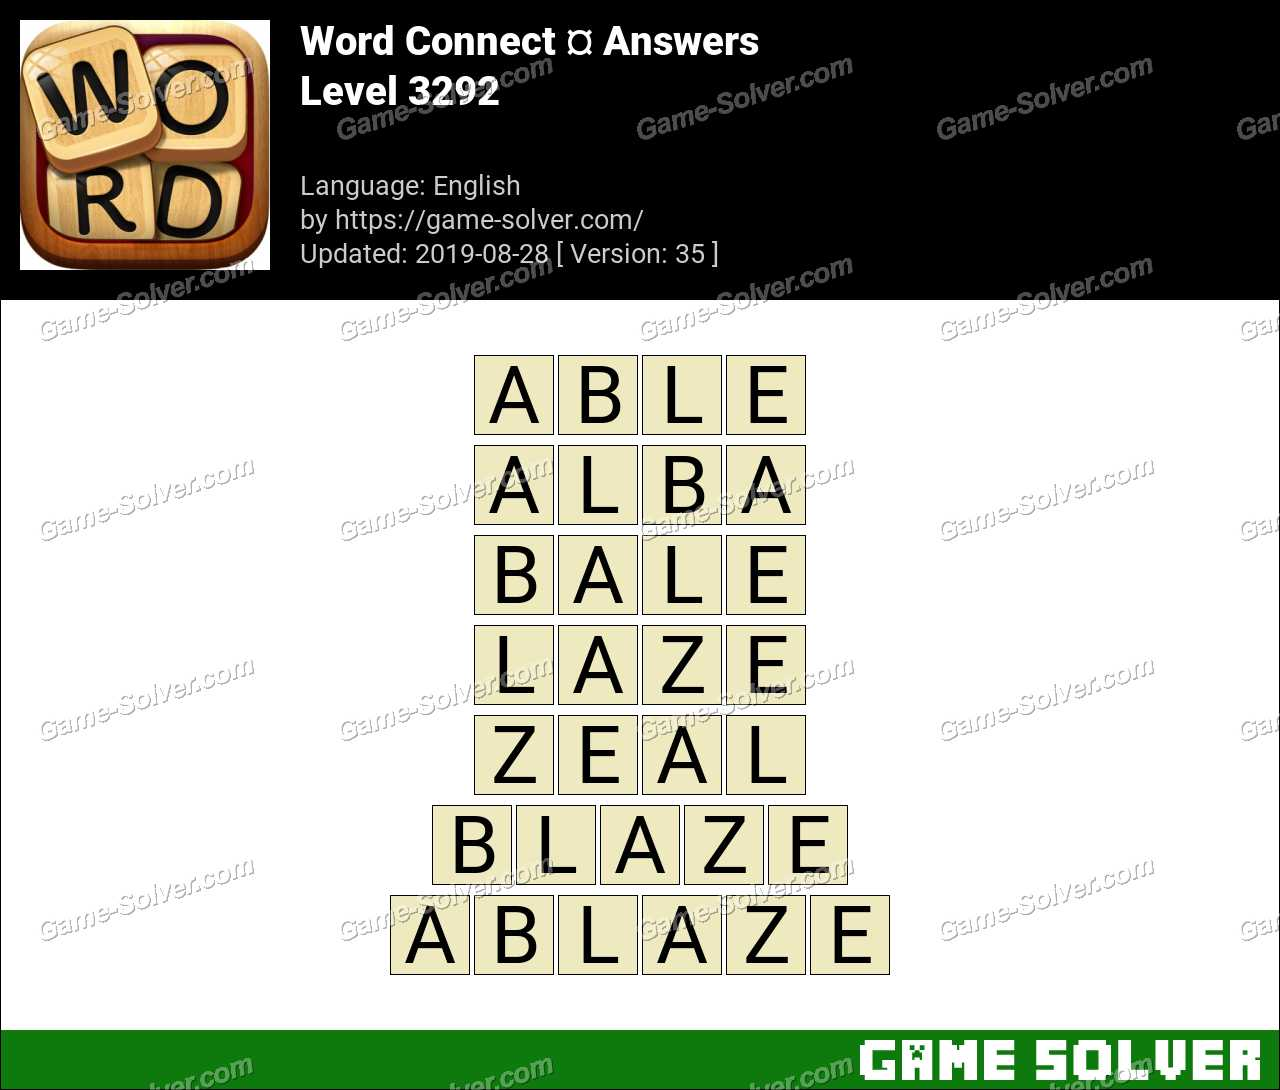 Word Connect Level 3292 Answers